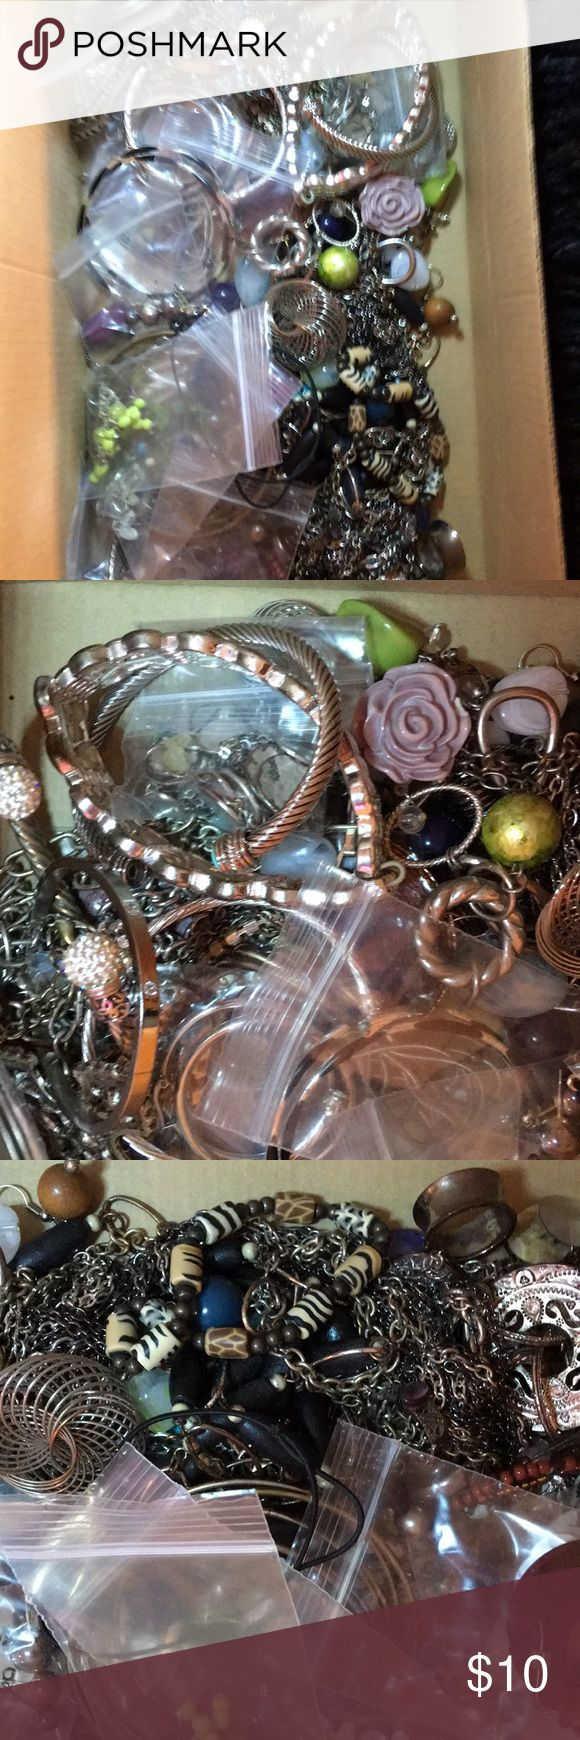 Shoebox of Jewelry Shoebox of Jewelry. Most is tarnished or broken. Perfect for someone that makes jewelry to use the pieces. Jewelry